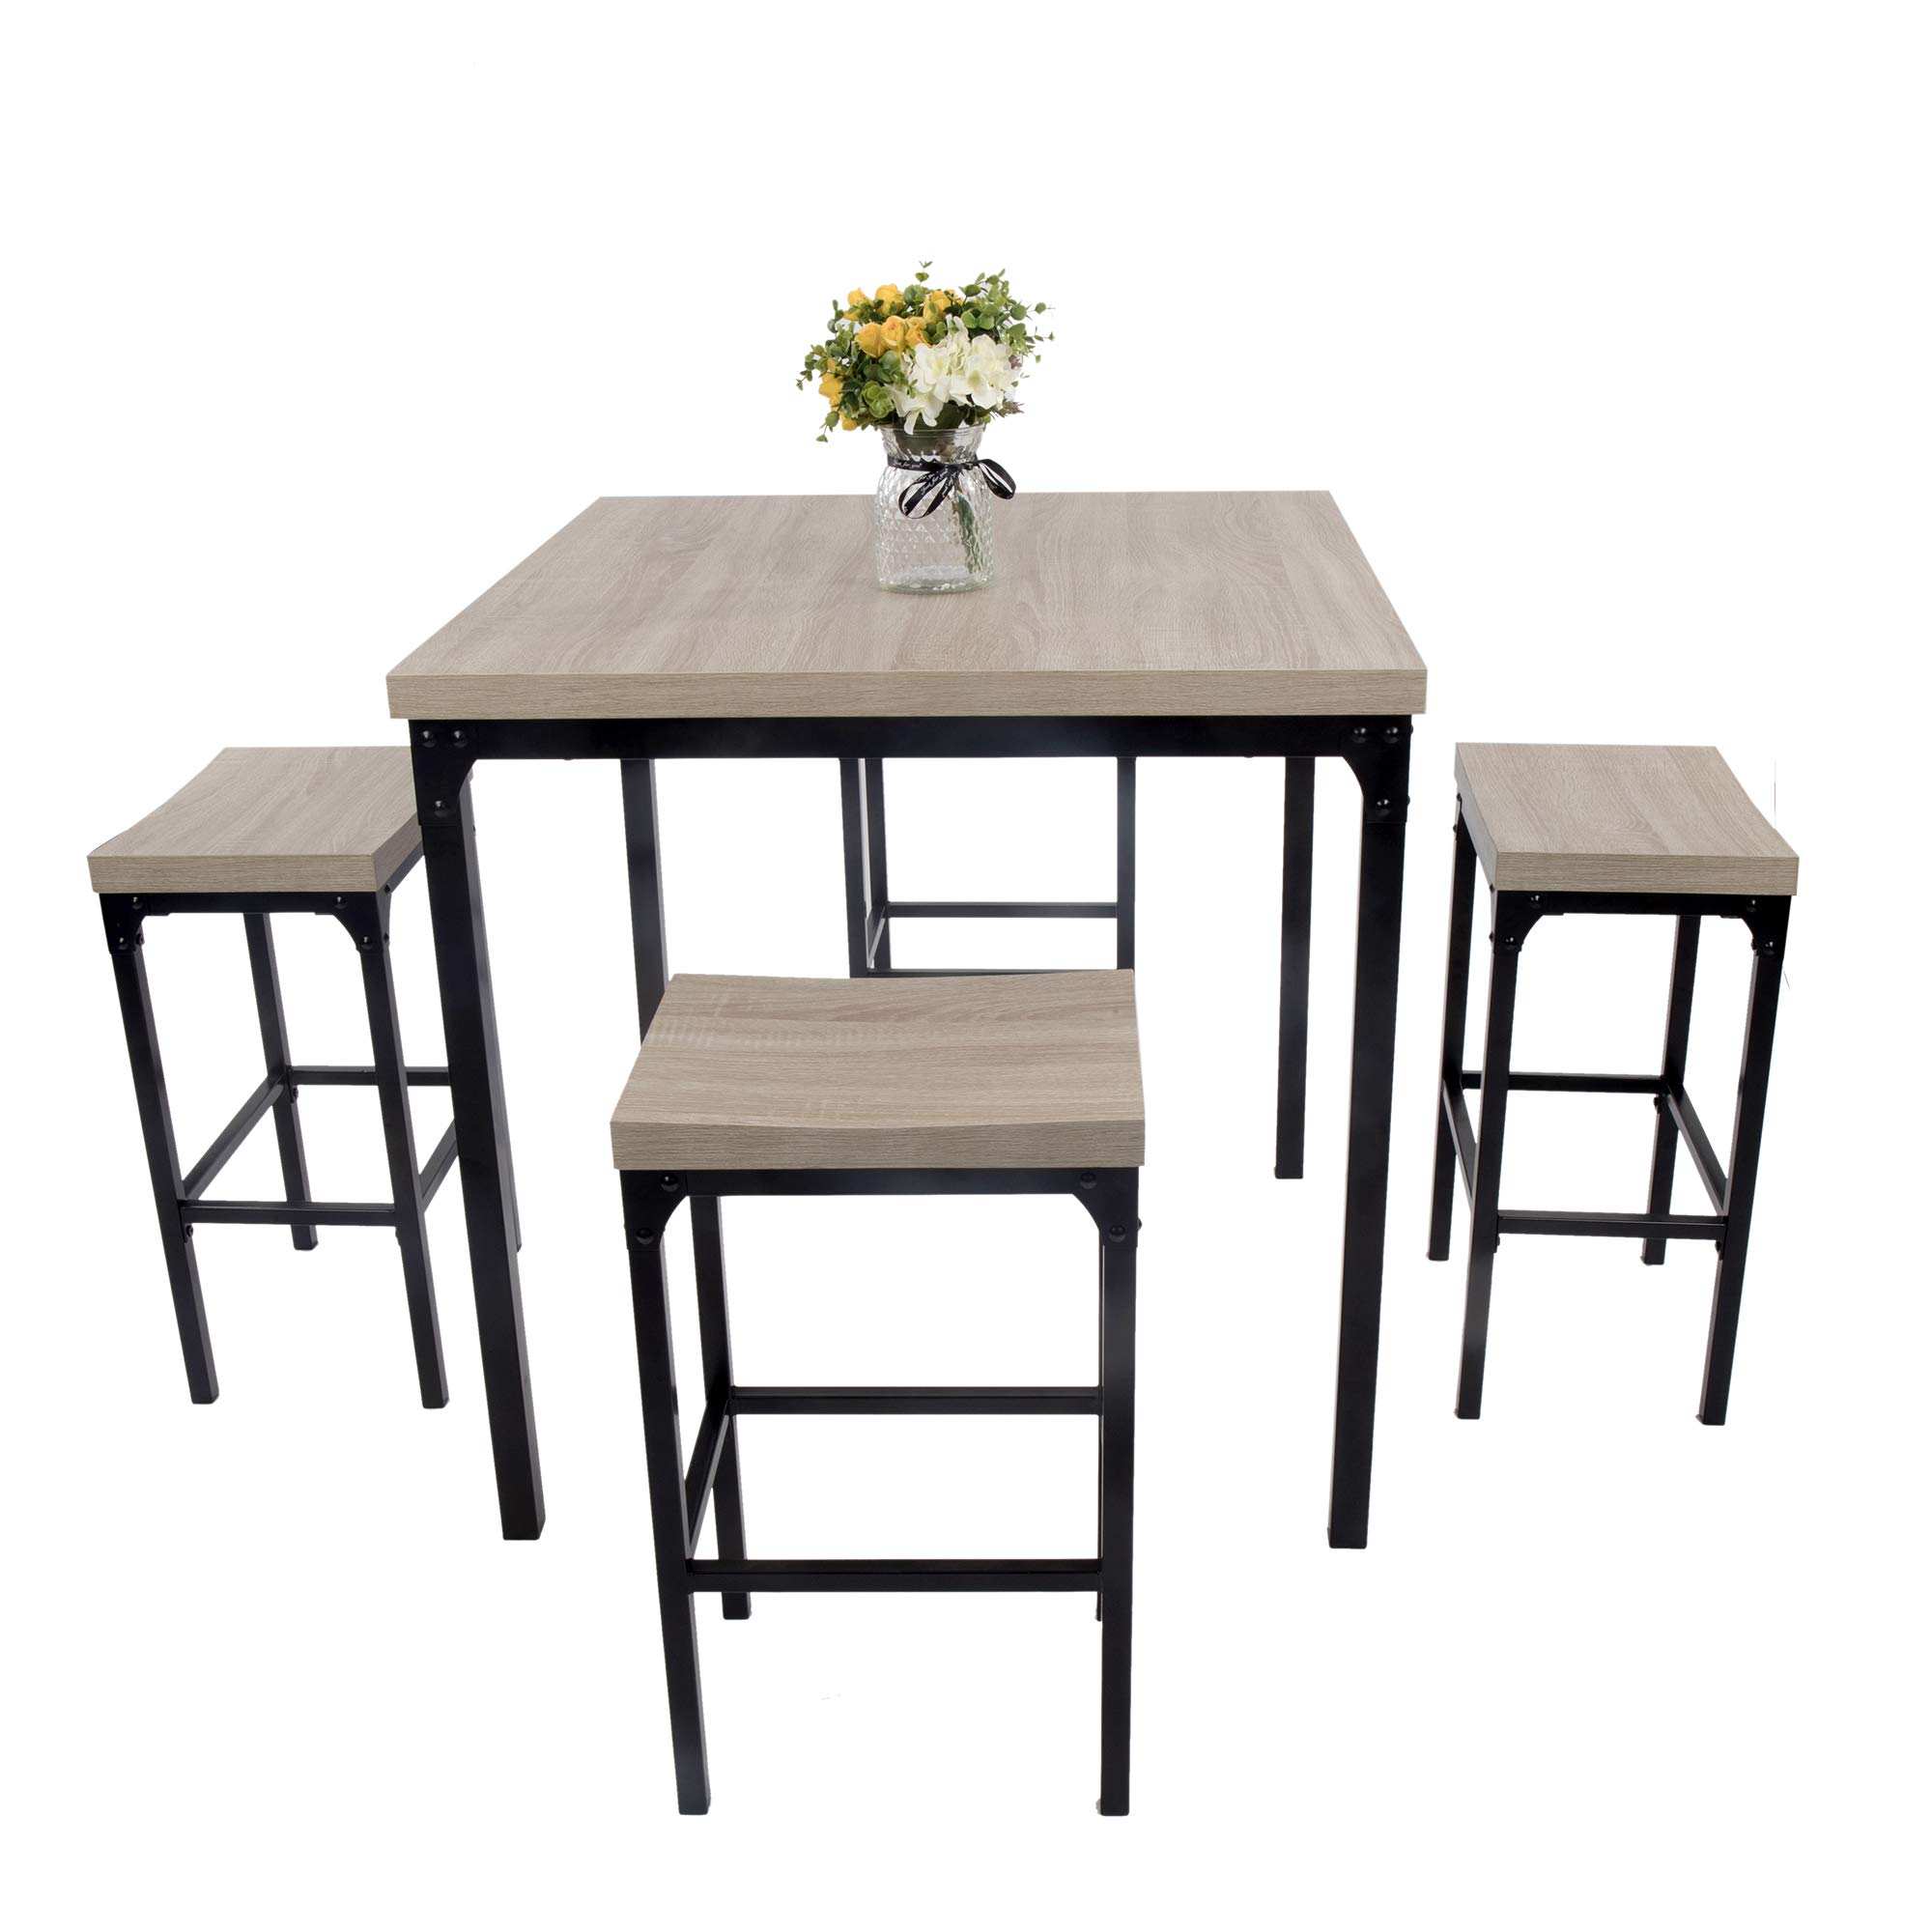 Luckyermore 5 Piece Pub Dining Table Set Kitchen Table And Chairs For 4 Bar Stool Industrial Style Counter Height Square Dinette Set Buy Online In Montenegro At Montenegro Desertcart Com Productid 111540683